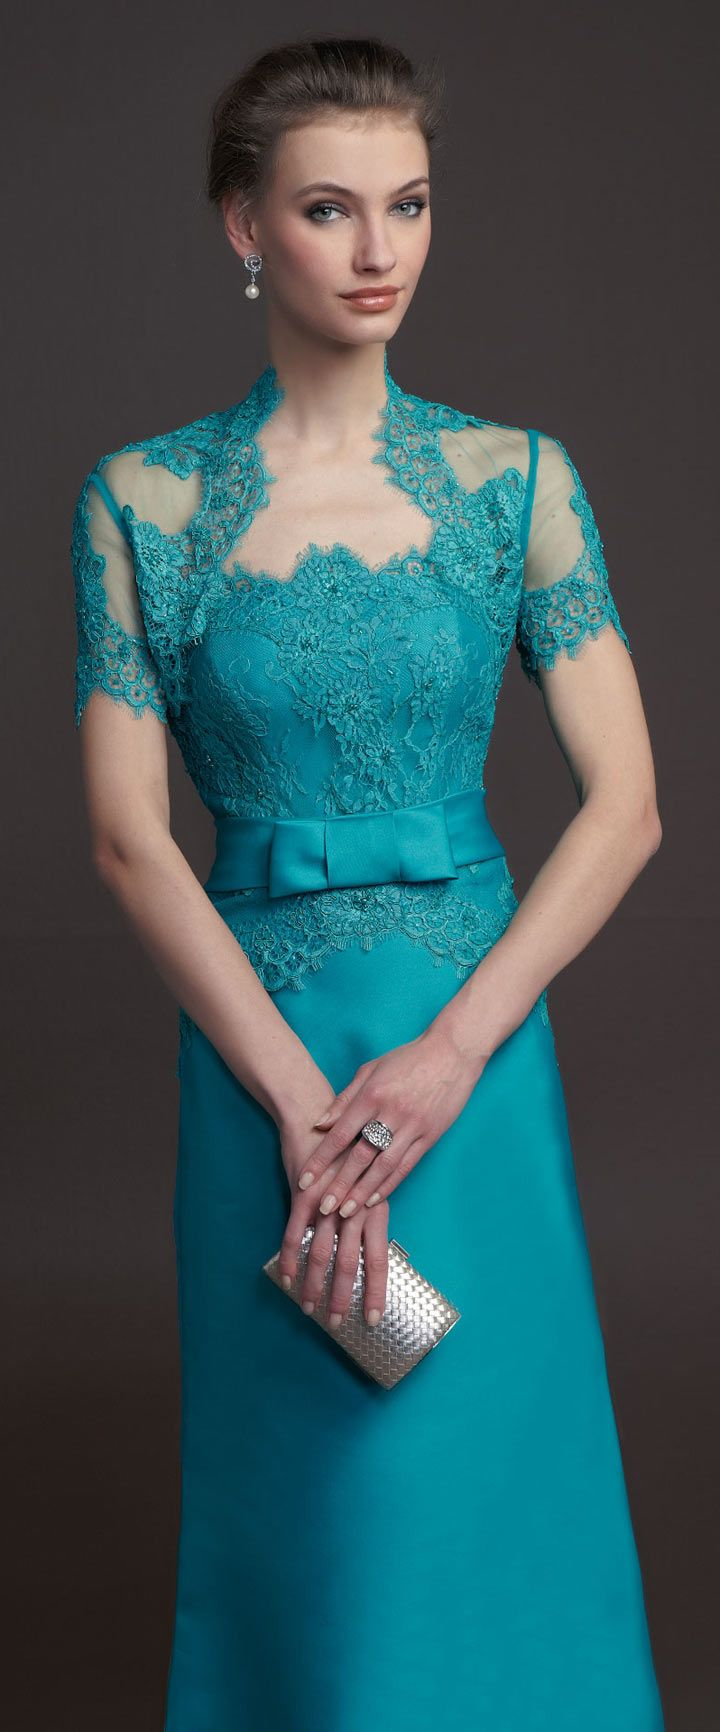 221 best gown images on Pinterest | Beautiful gowns, Dream dress and ...